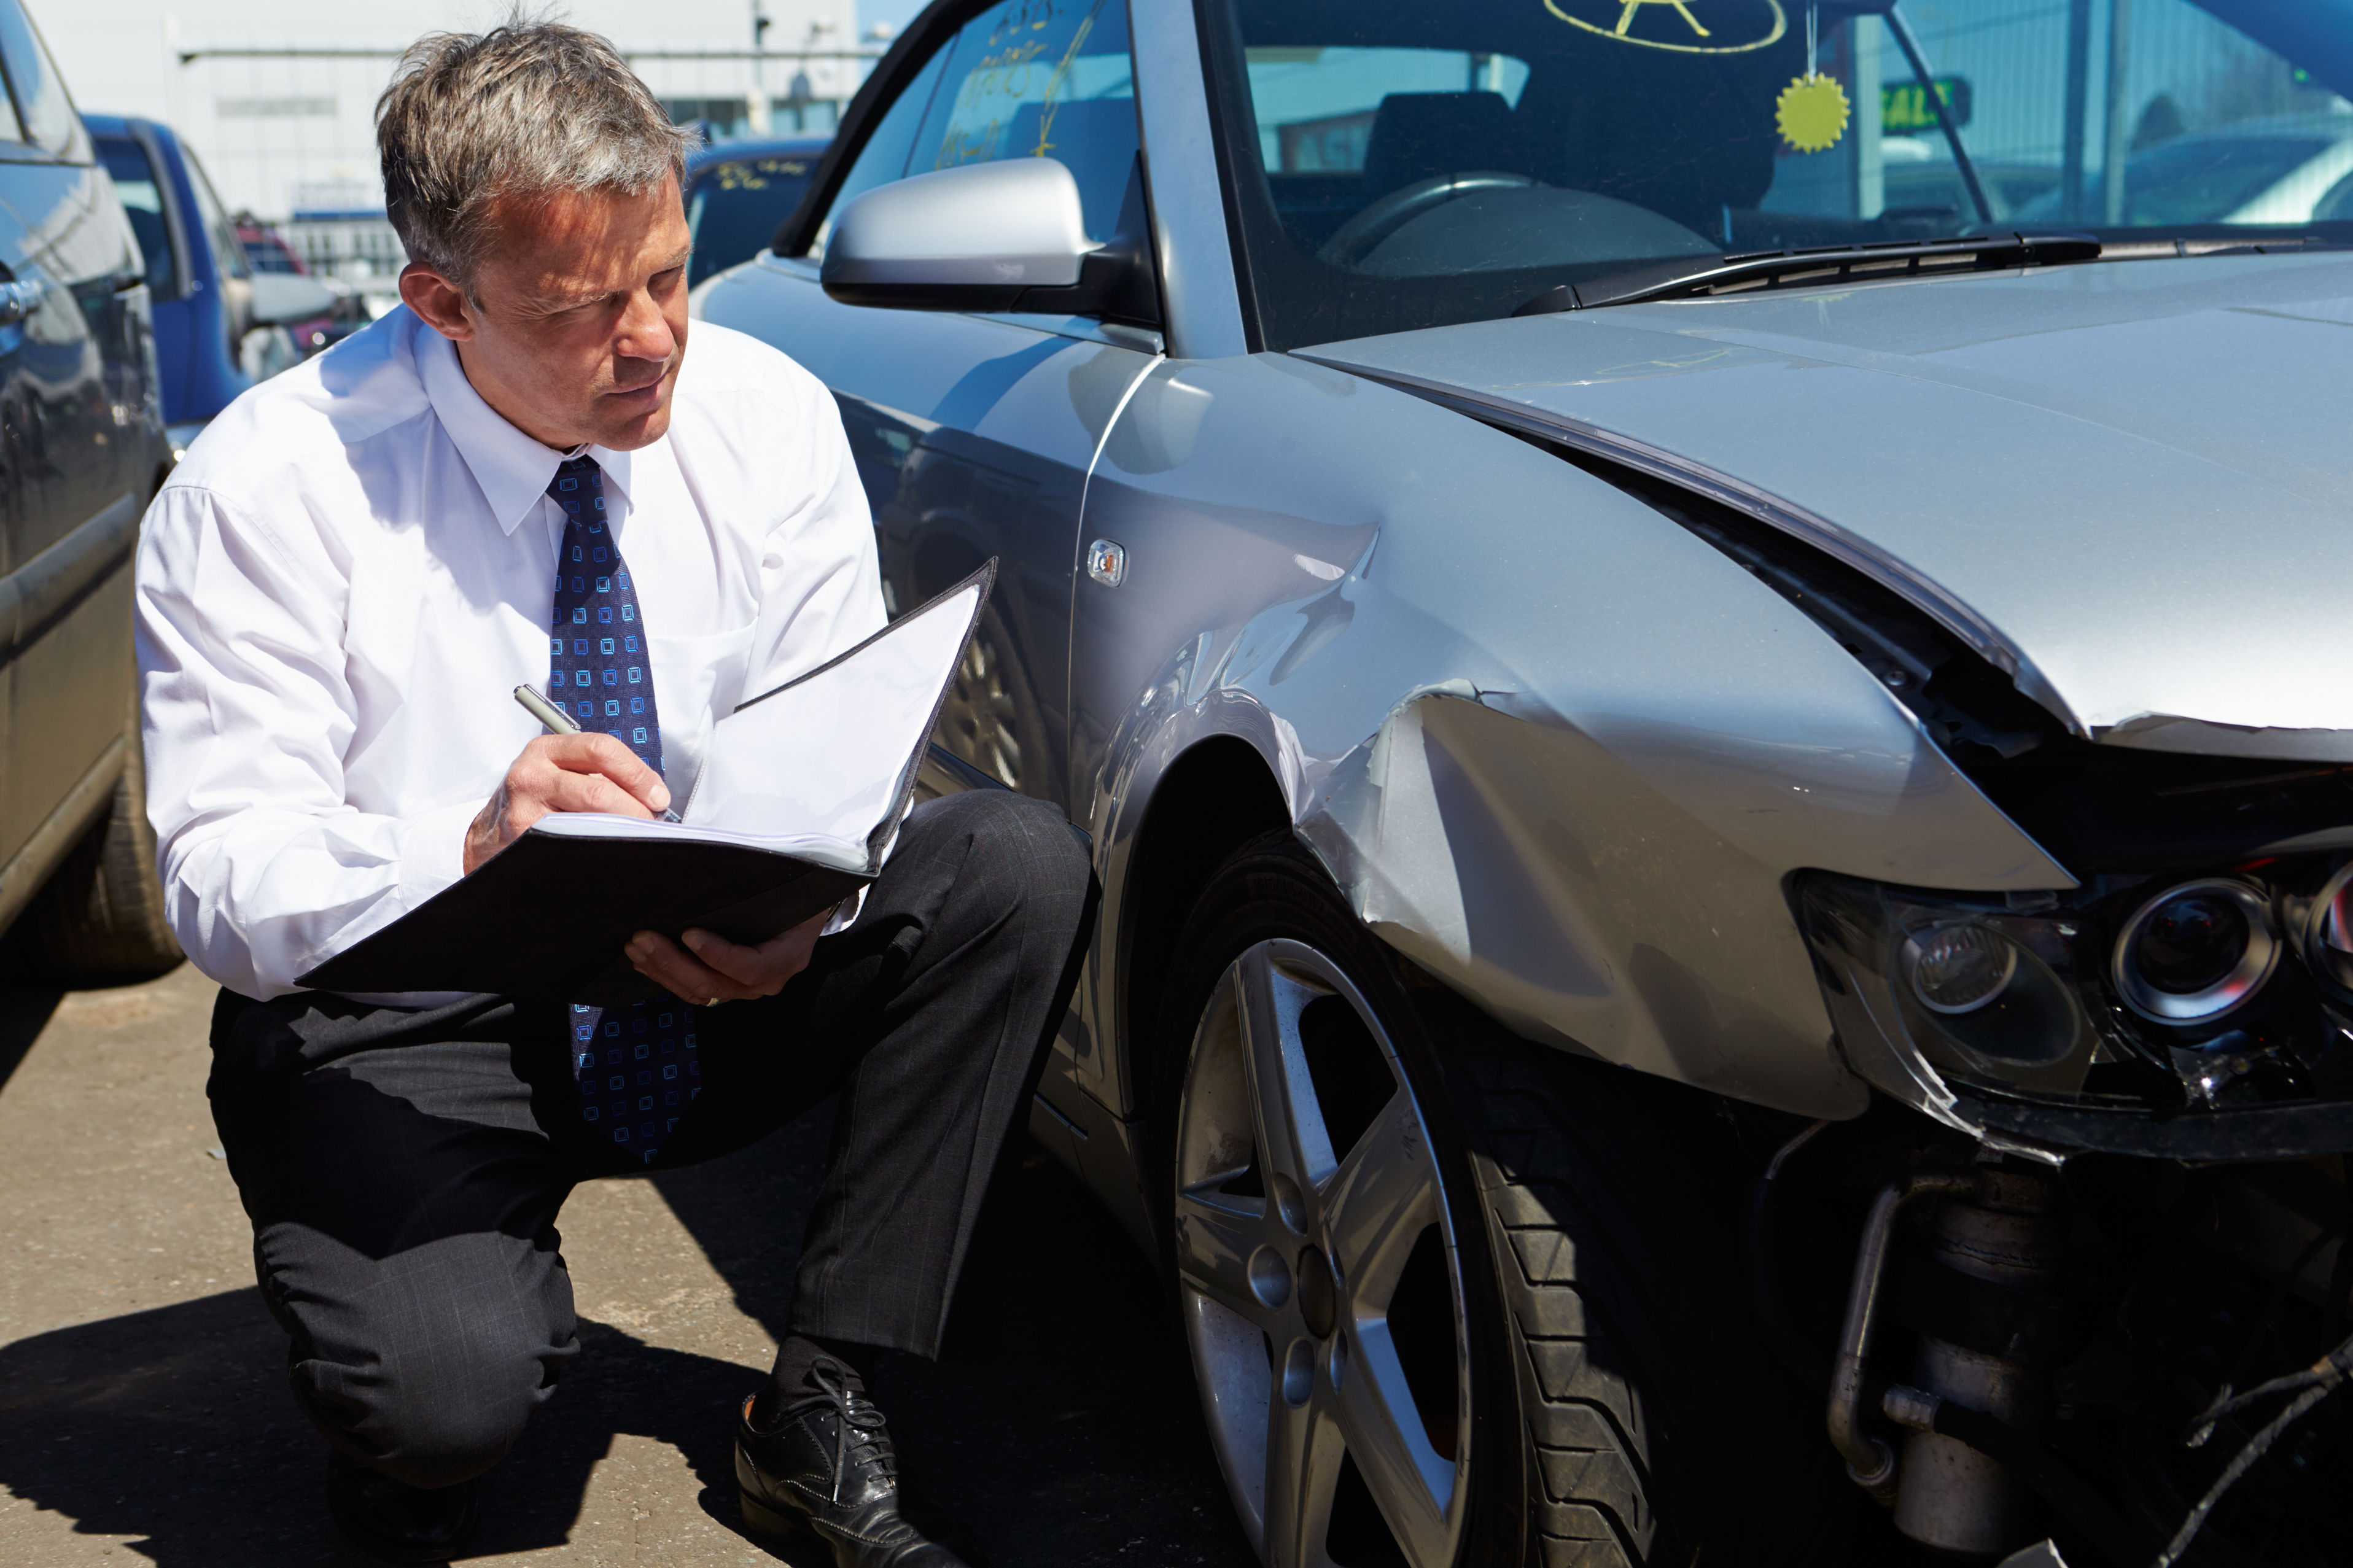 3 Tips for Finding a Good Car Accident Lawyer